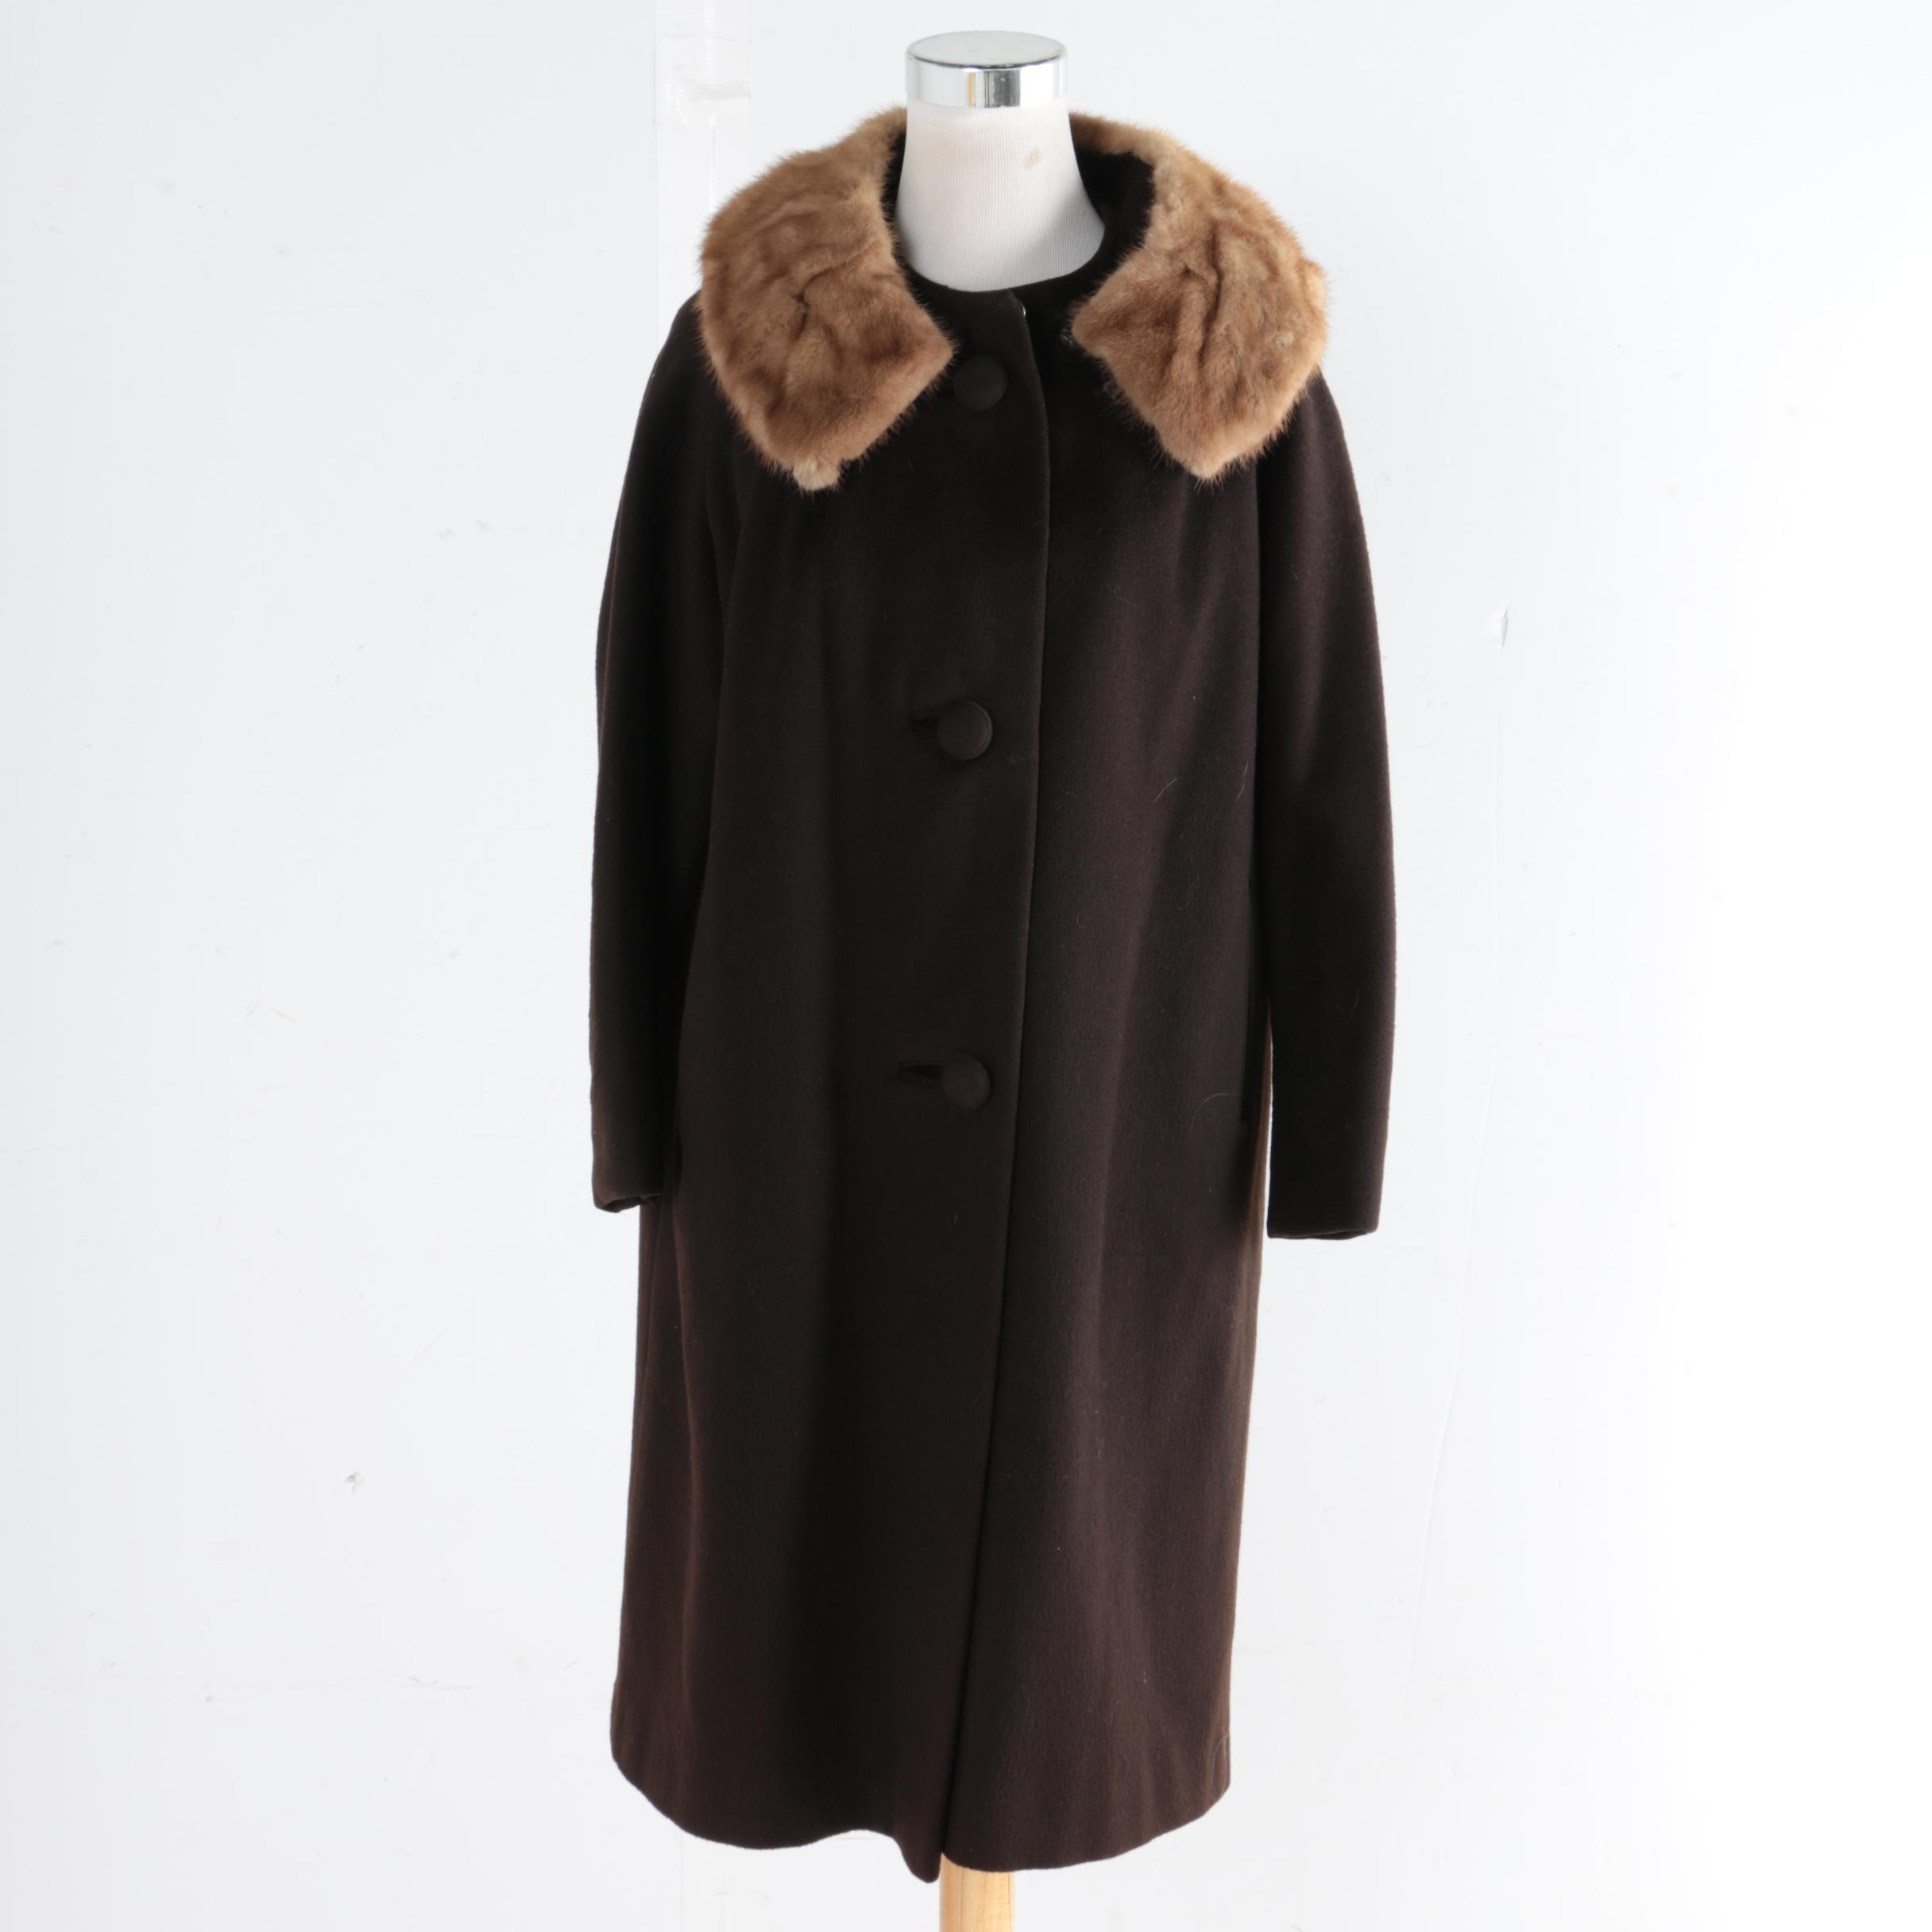 Vintage Michel Daniel Wool Coat with Mink Collar